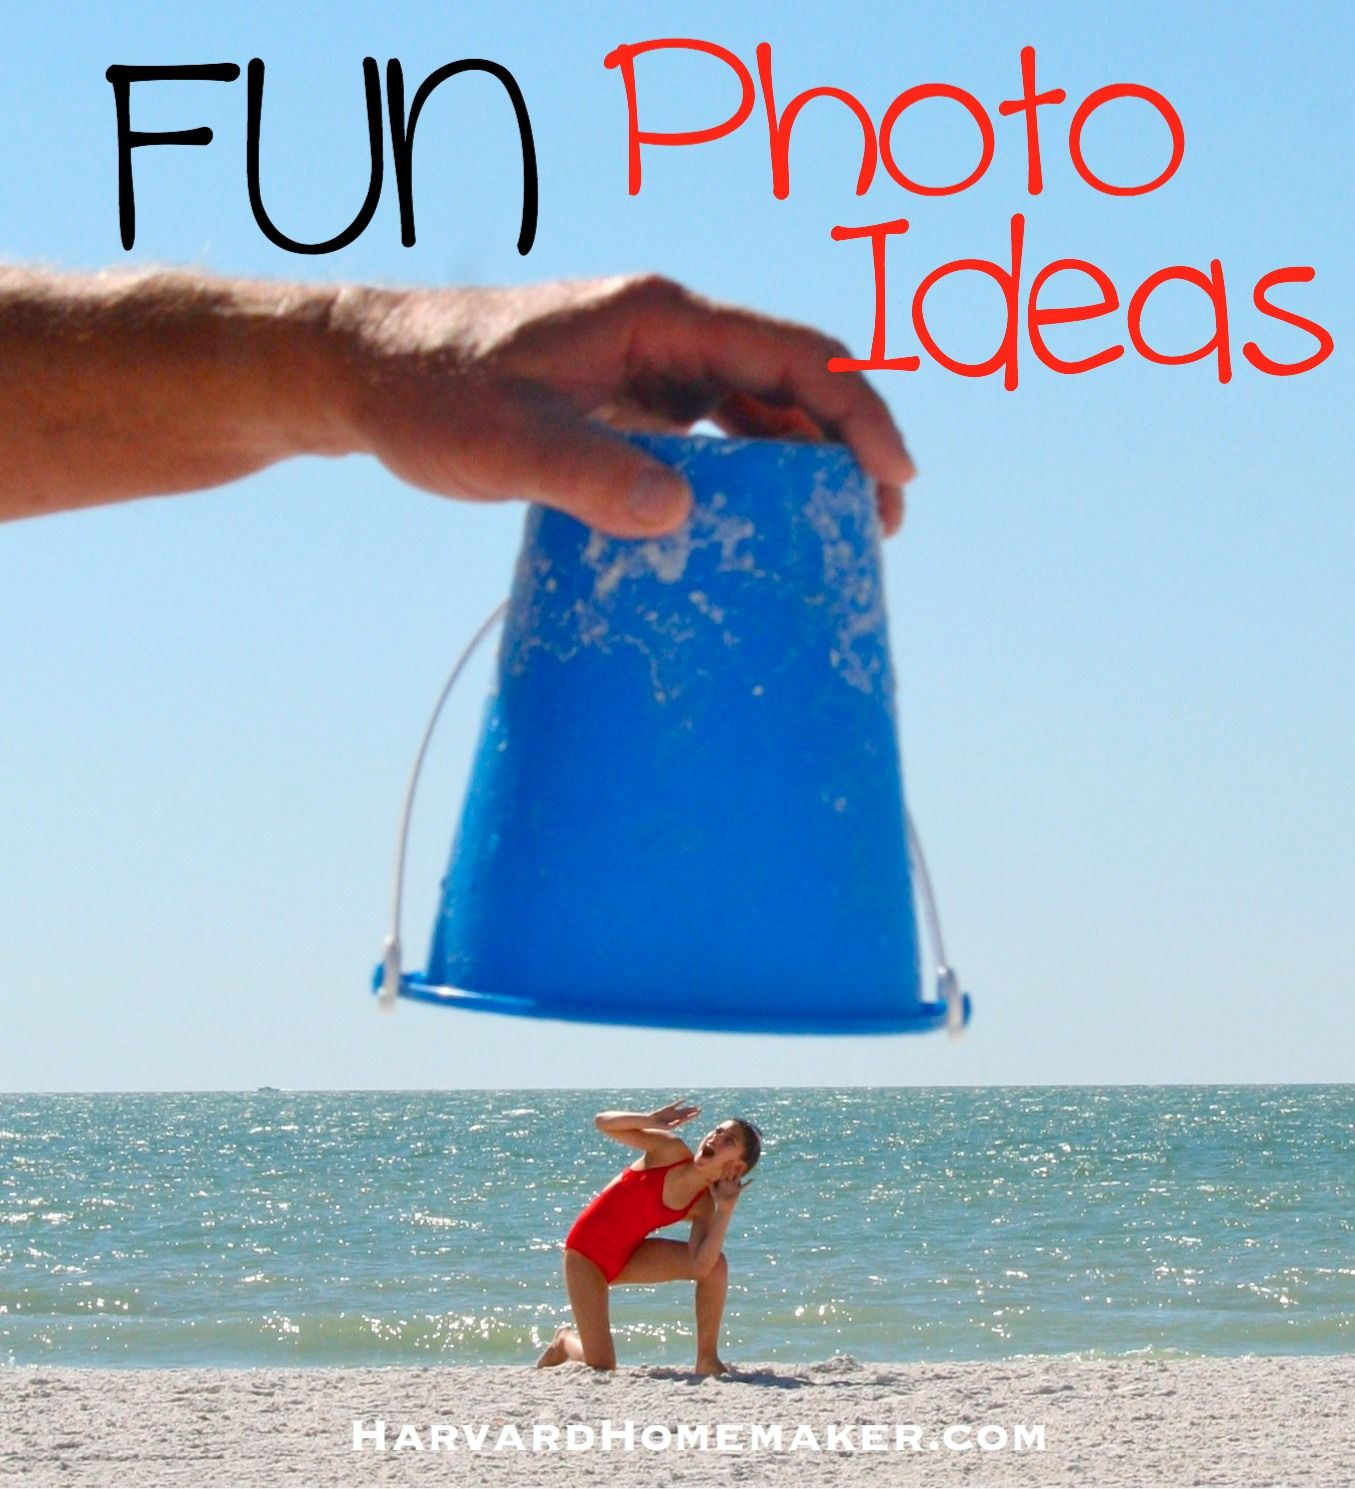 Lots of fun photo ideas here Creative ways to capture